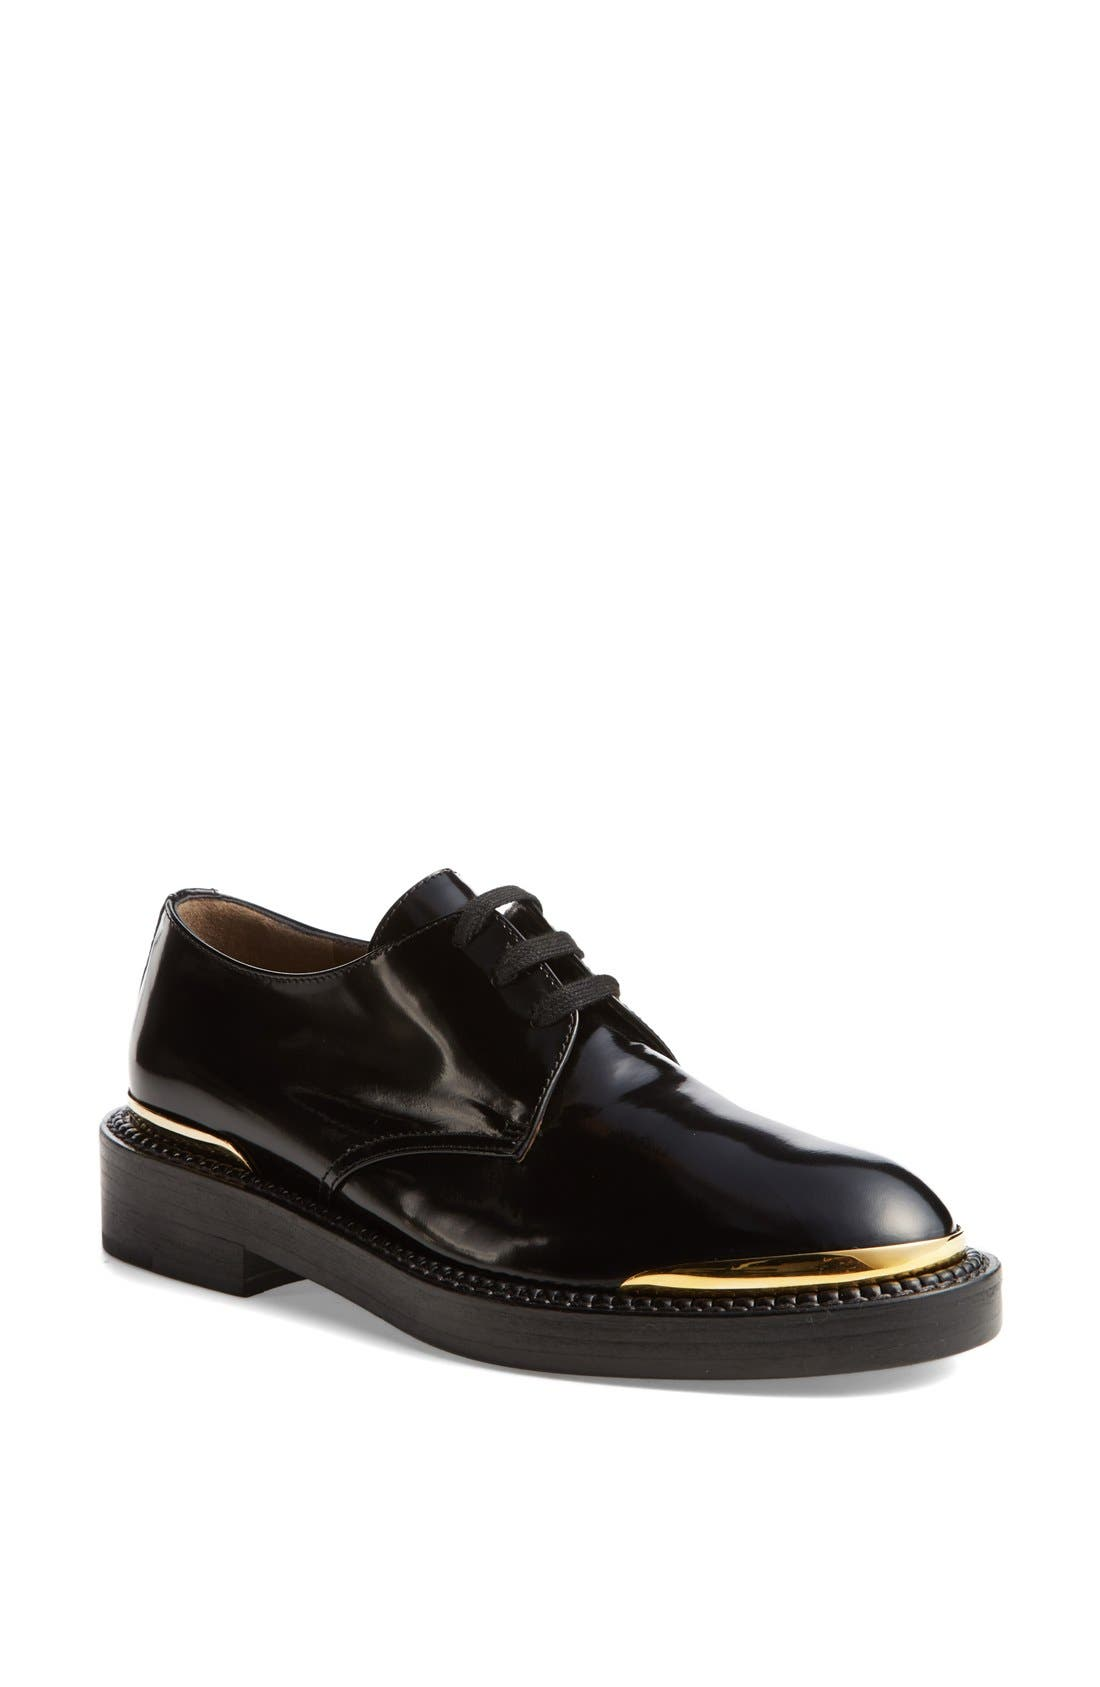 Alternate Image 1 Selected - Marni Metal Tip Oxford (Women)